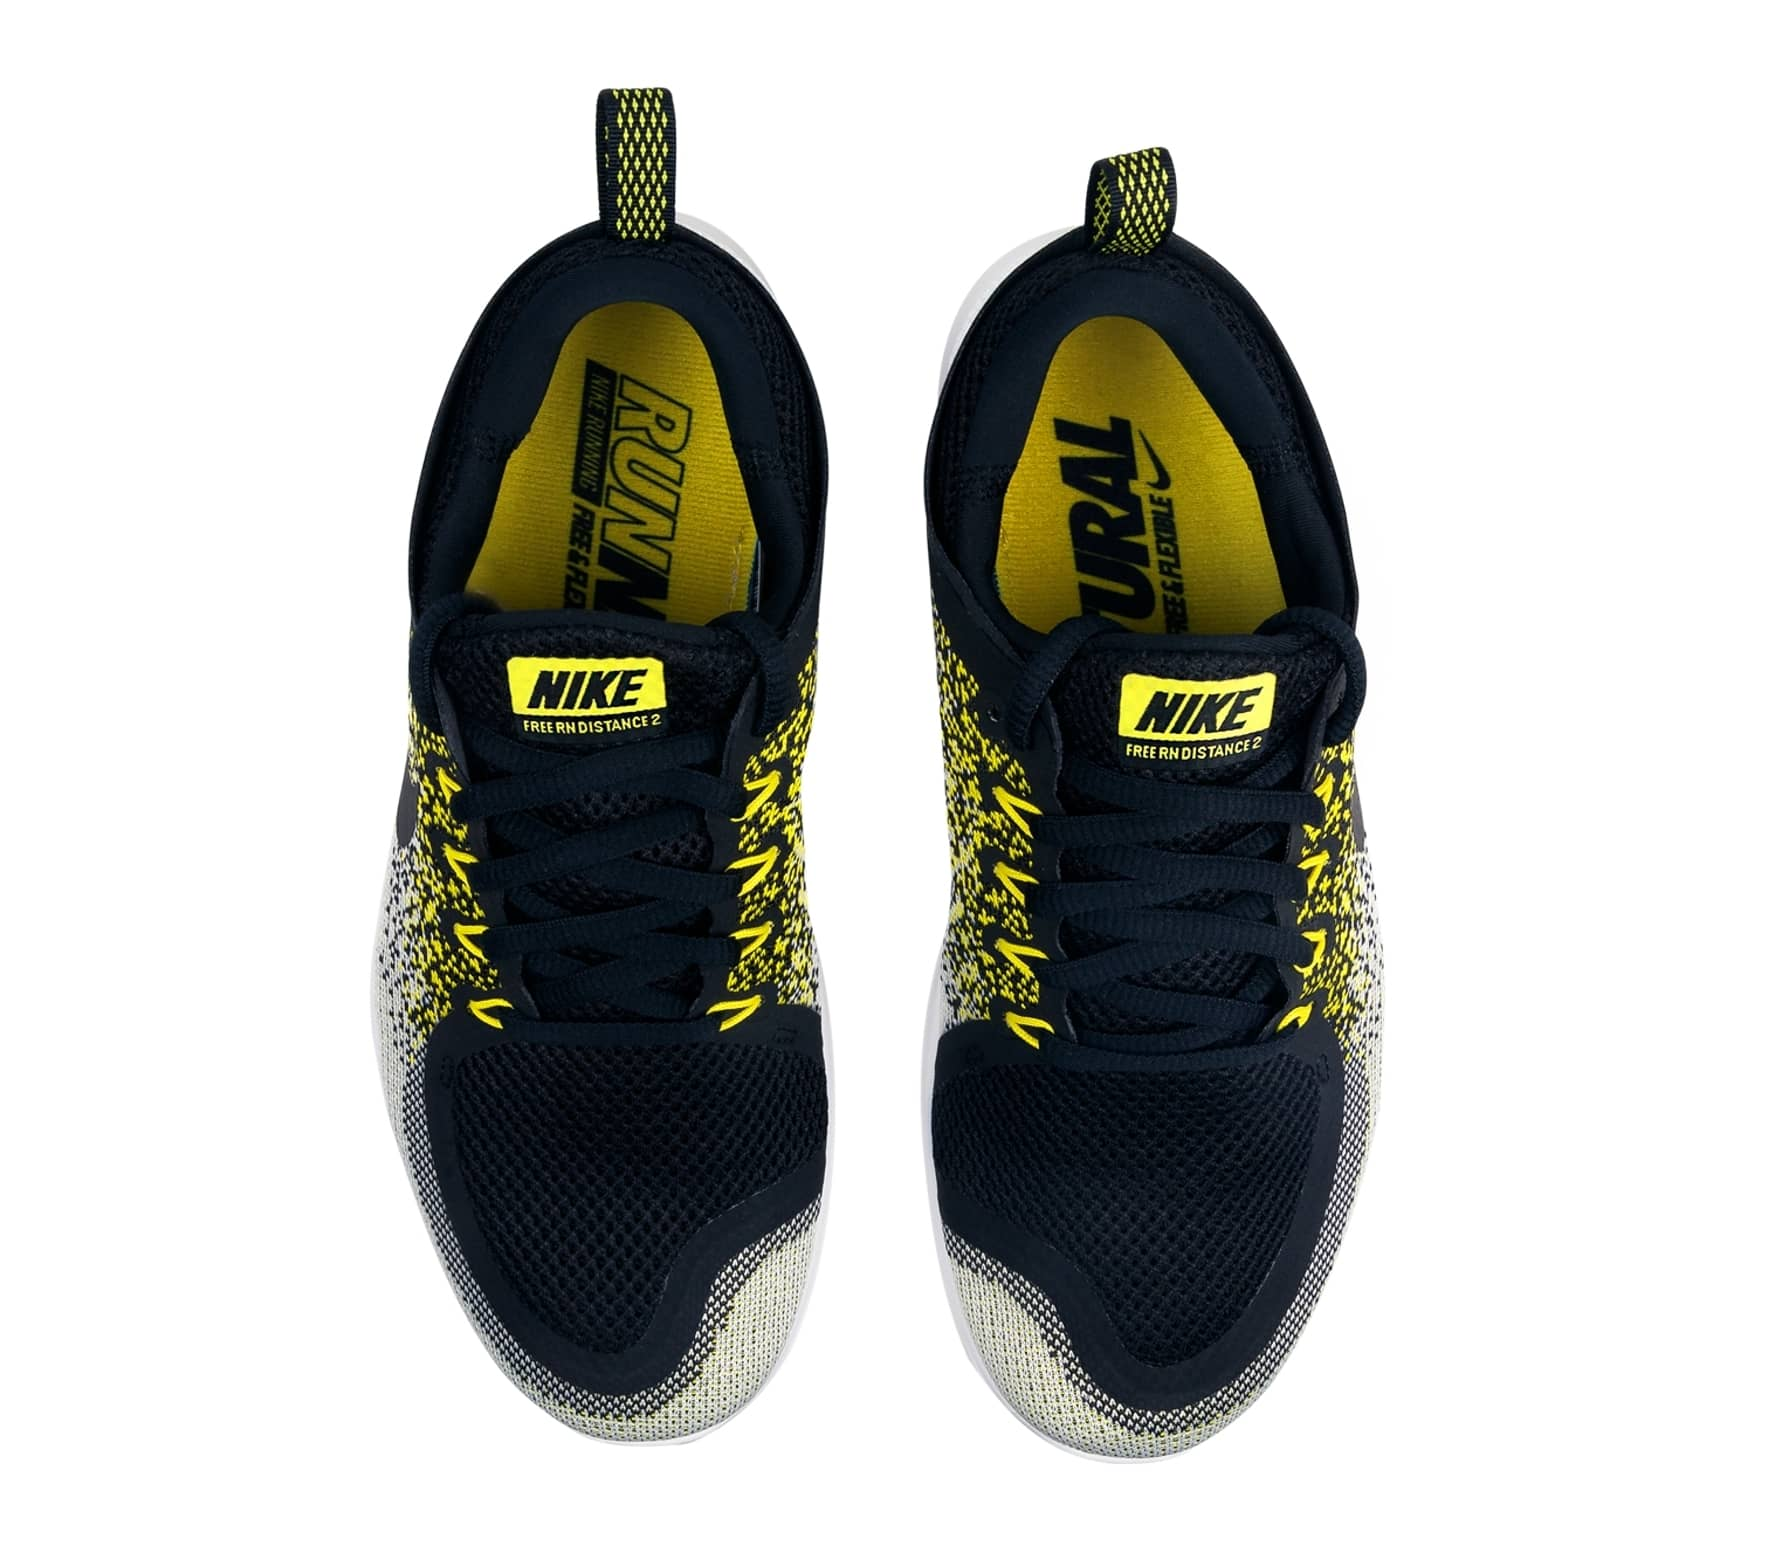 88e300972420 Nike - Free RN Distance 2 BSTN women s running shoes (black yellow ...